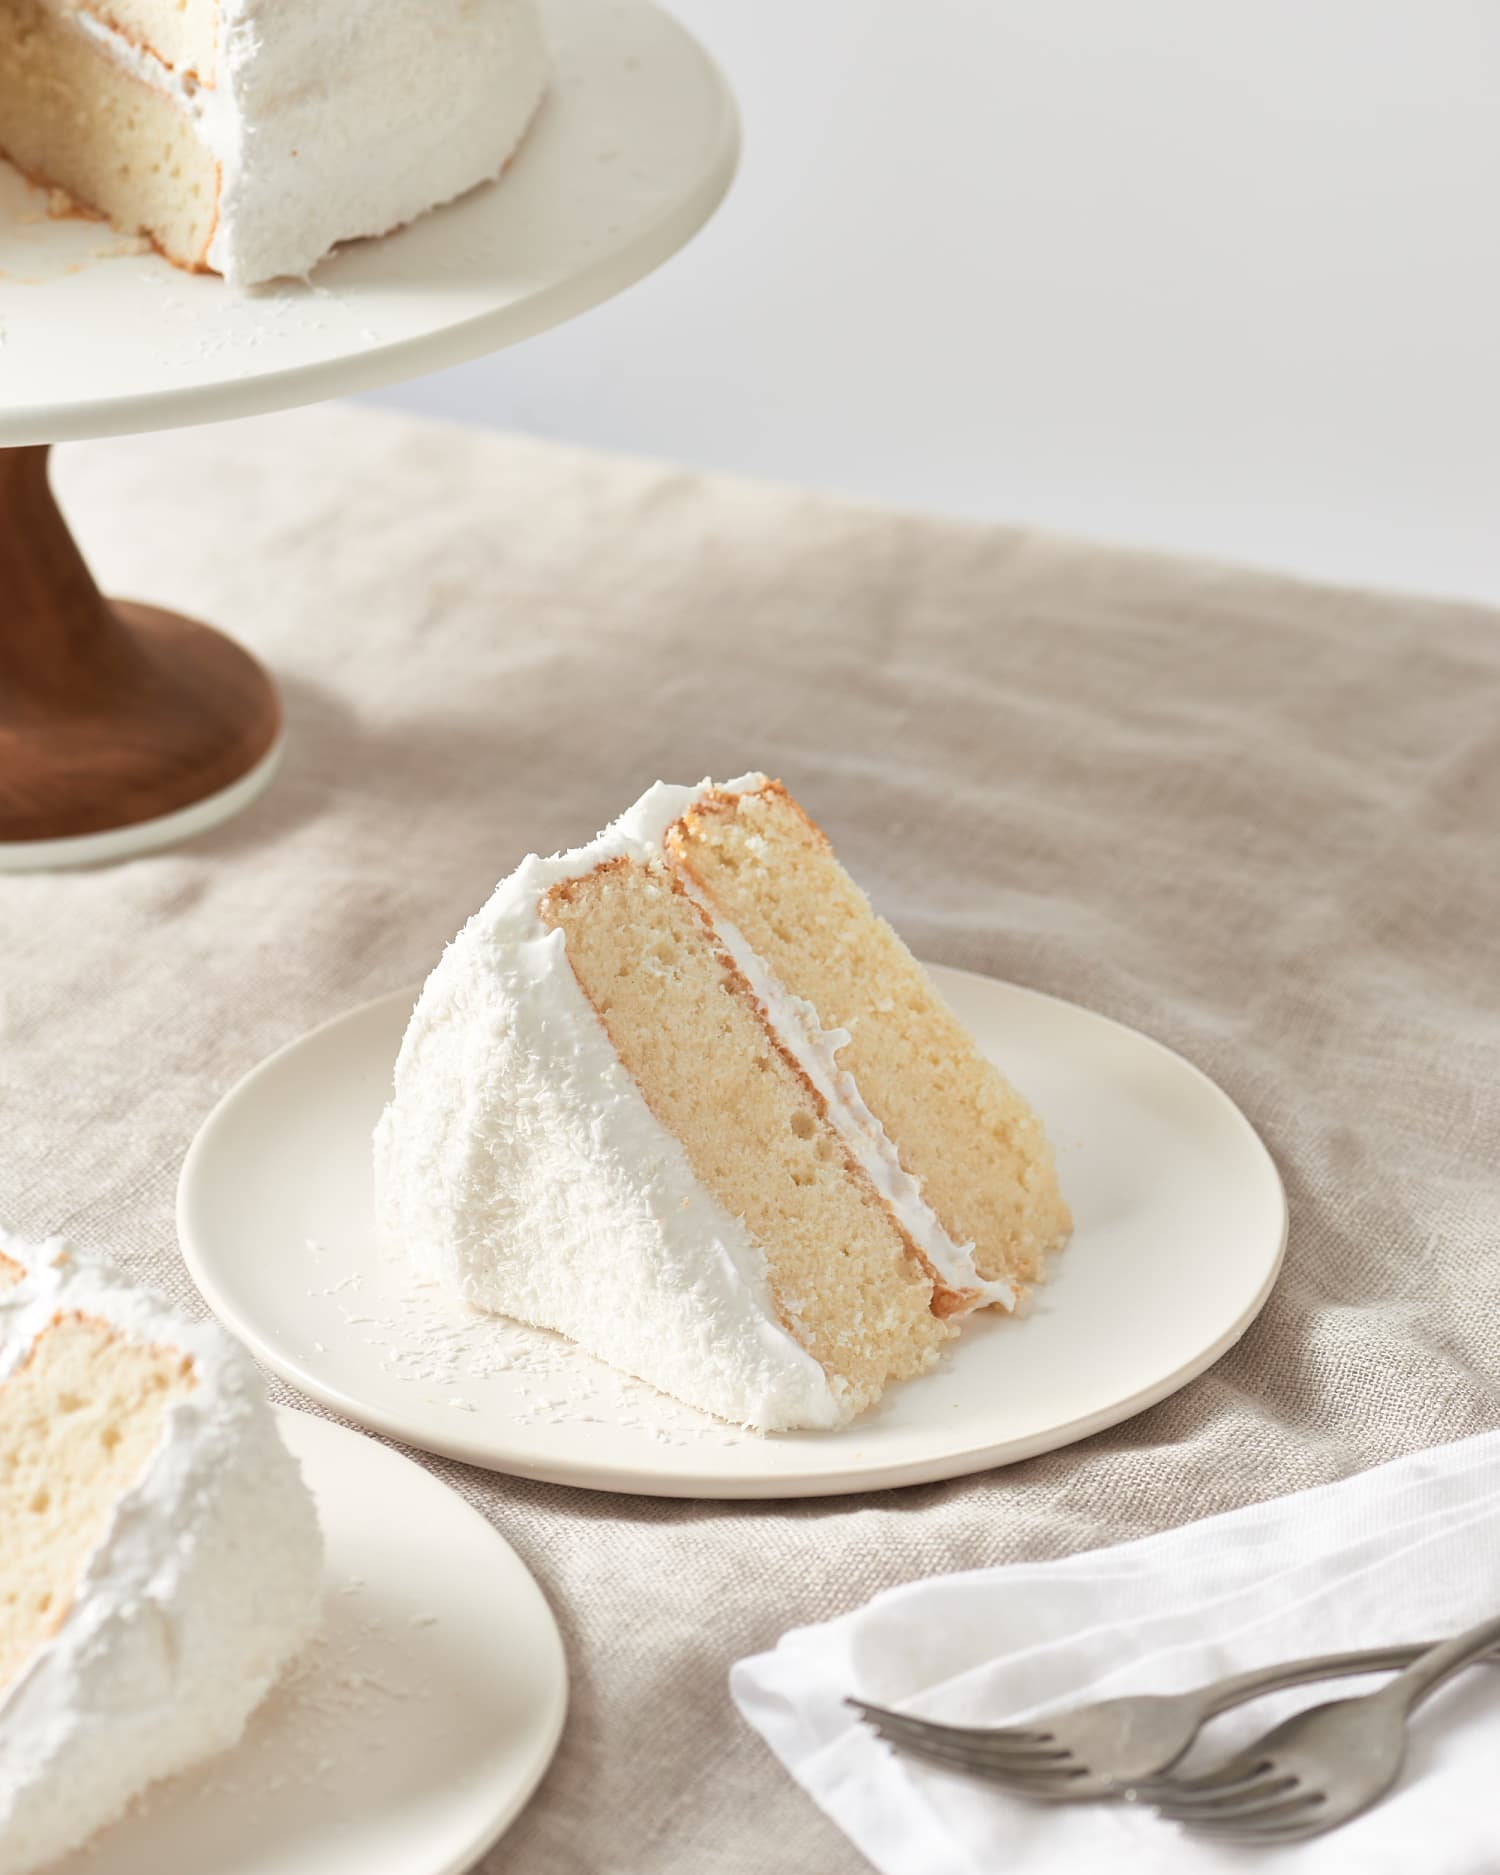 Your Search for the Ultimate Coconut Cake Stops Here